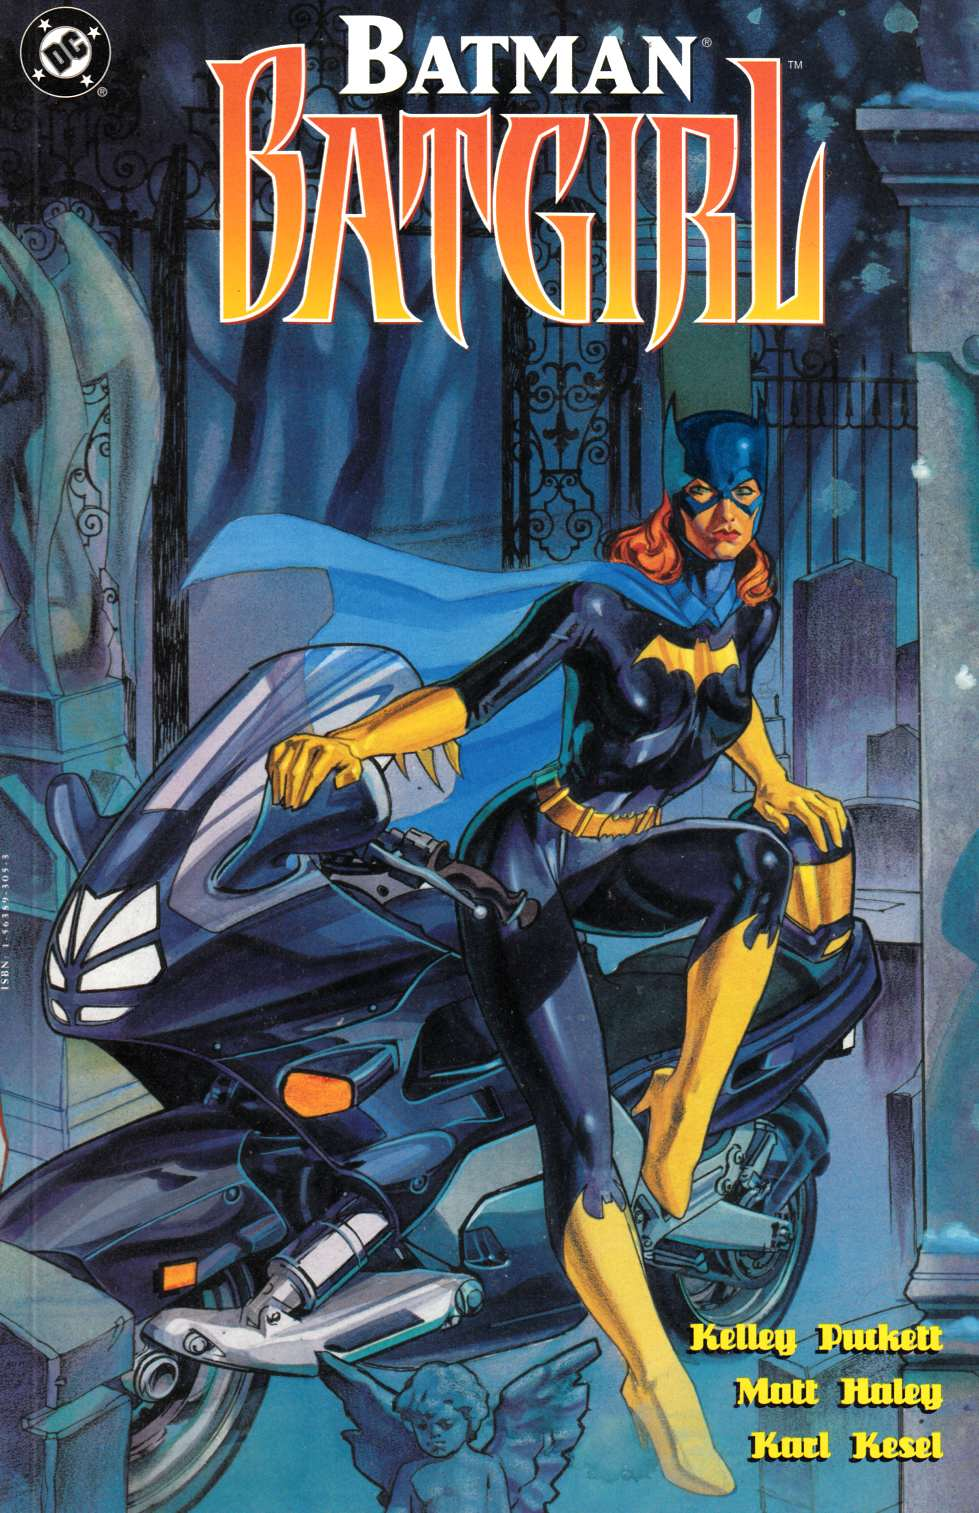 Batman Batgirl (One Shot) Near Mint (9.4) [DC Comic]